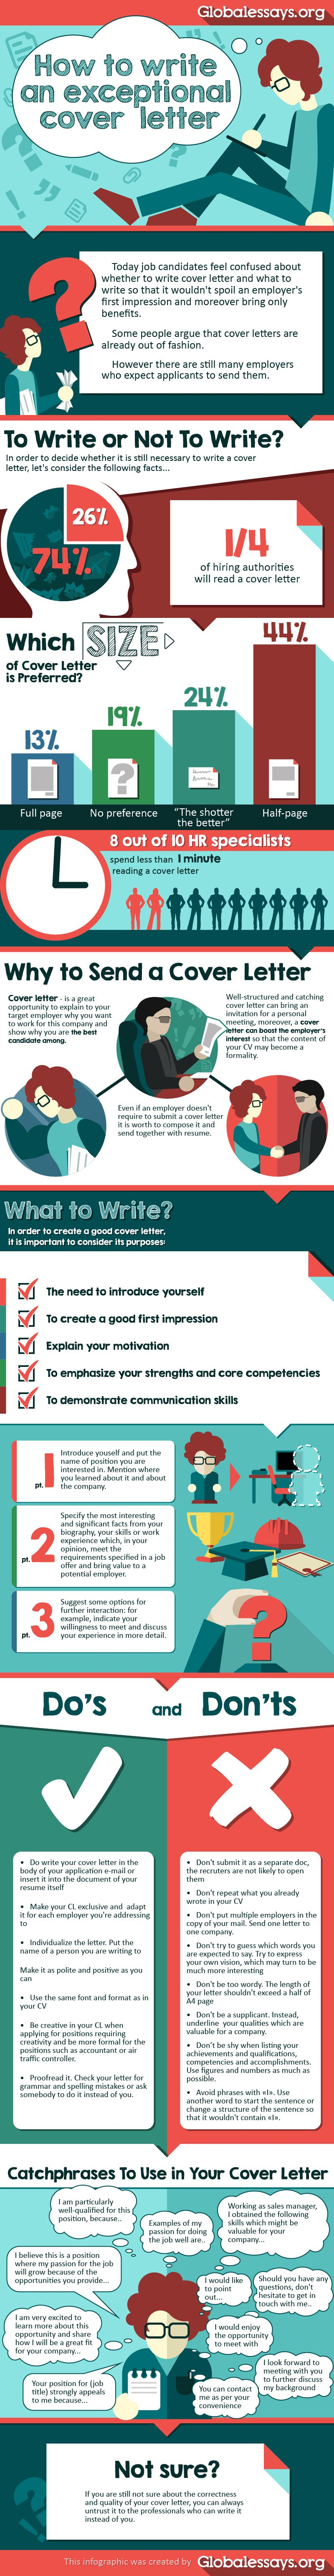 how to write an exceptional cover letter - Writing An Excellent Cover Letter